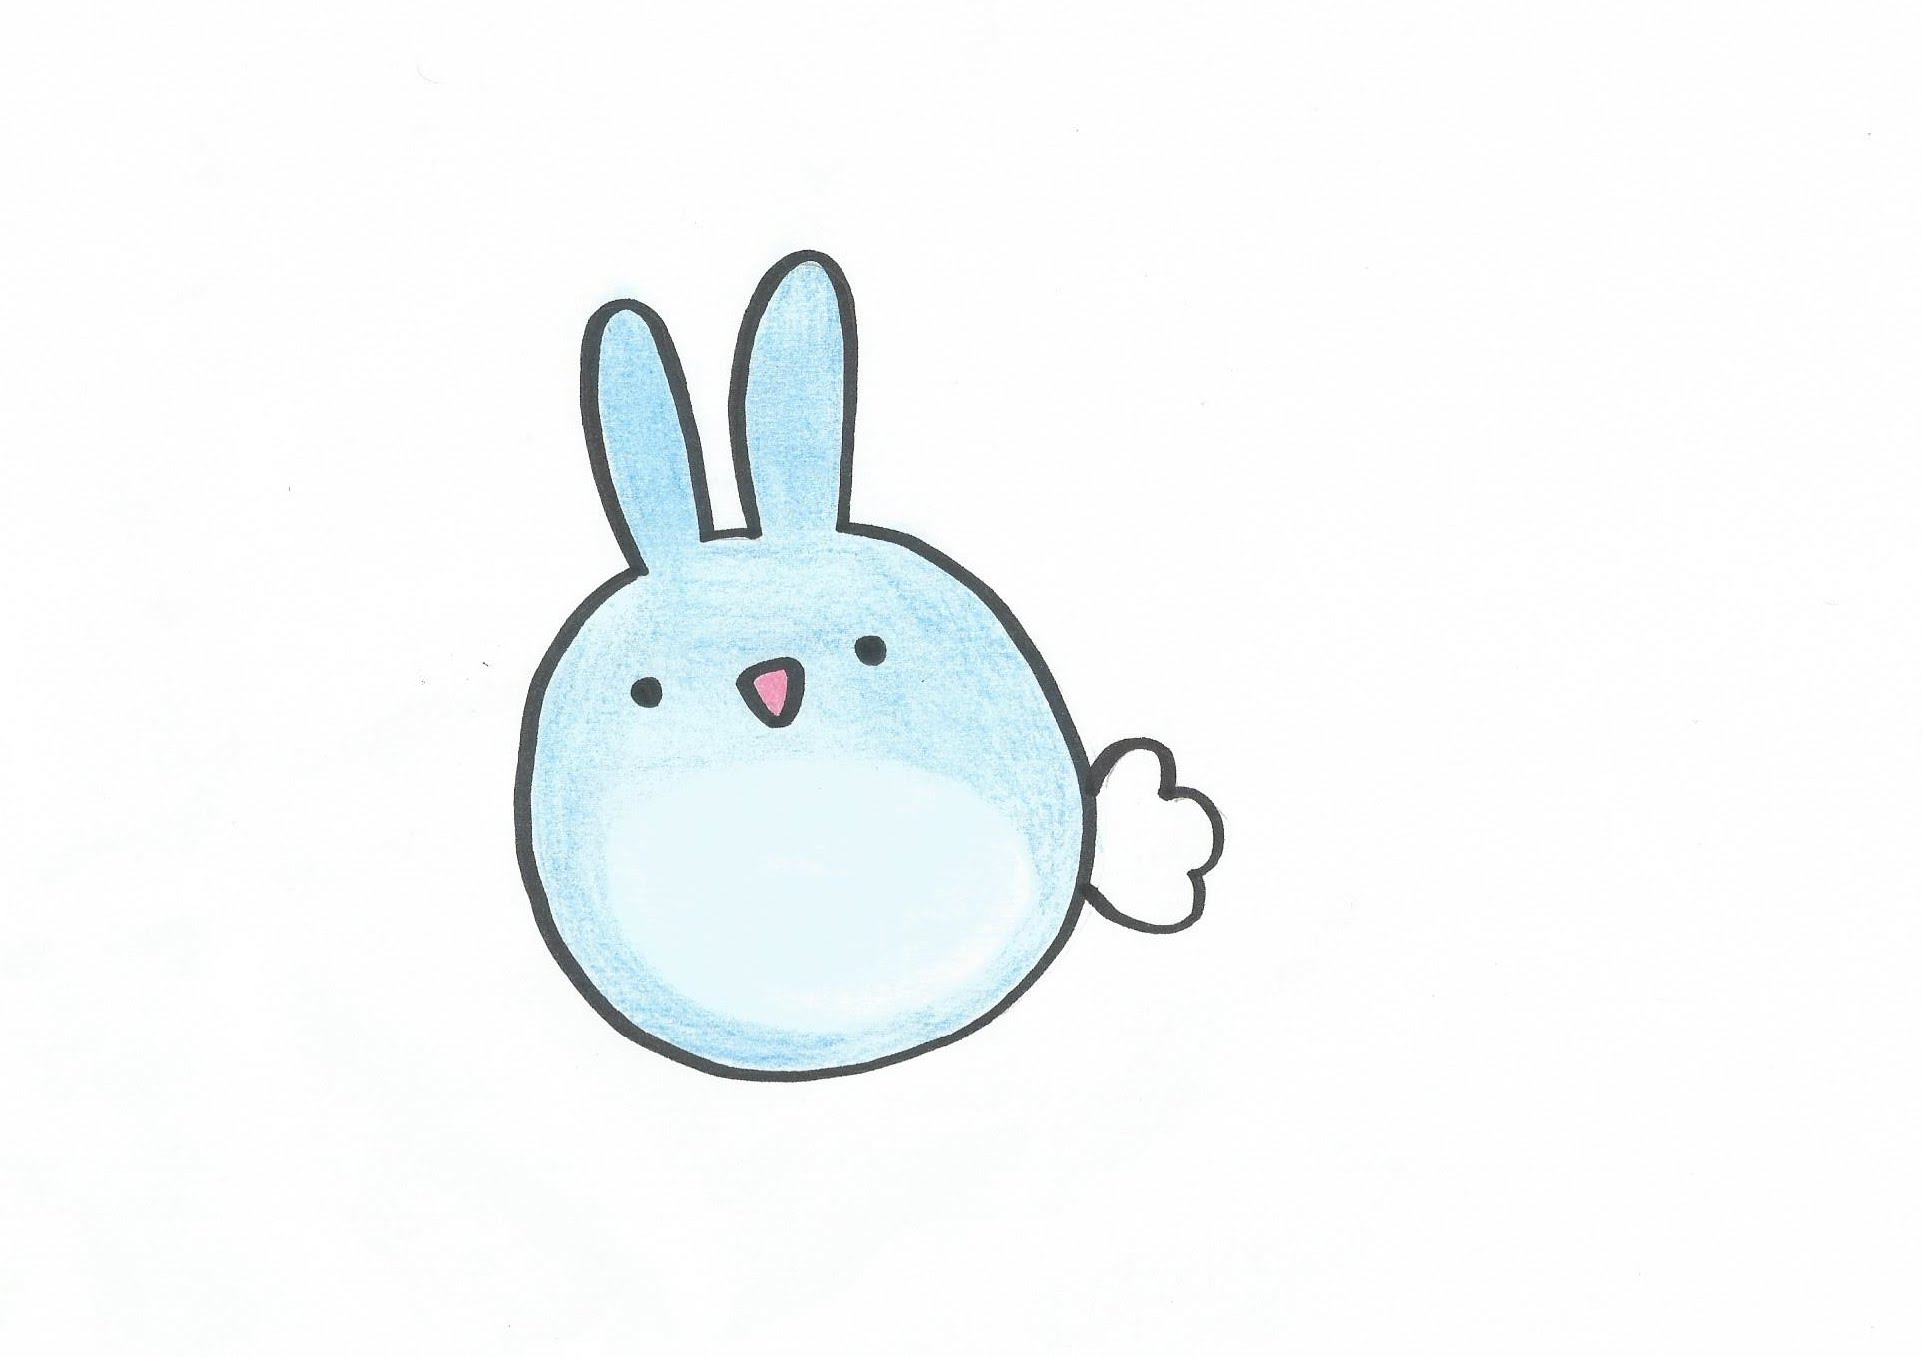 Drawn rabbit adorable bunny Cute to How a BUNNY